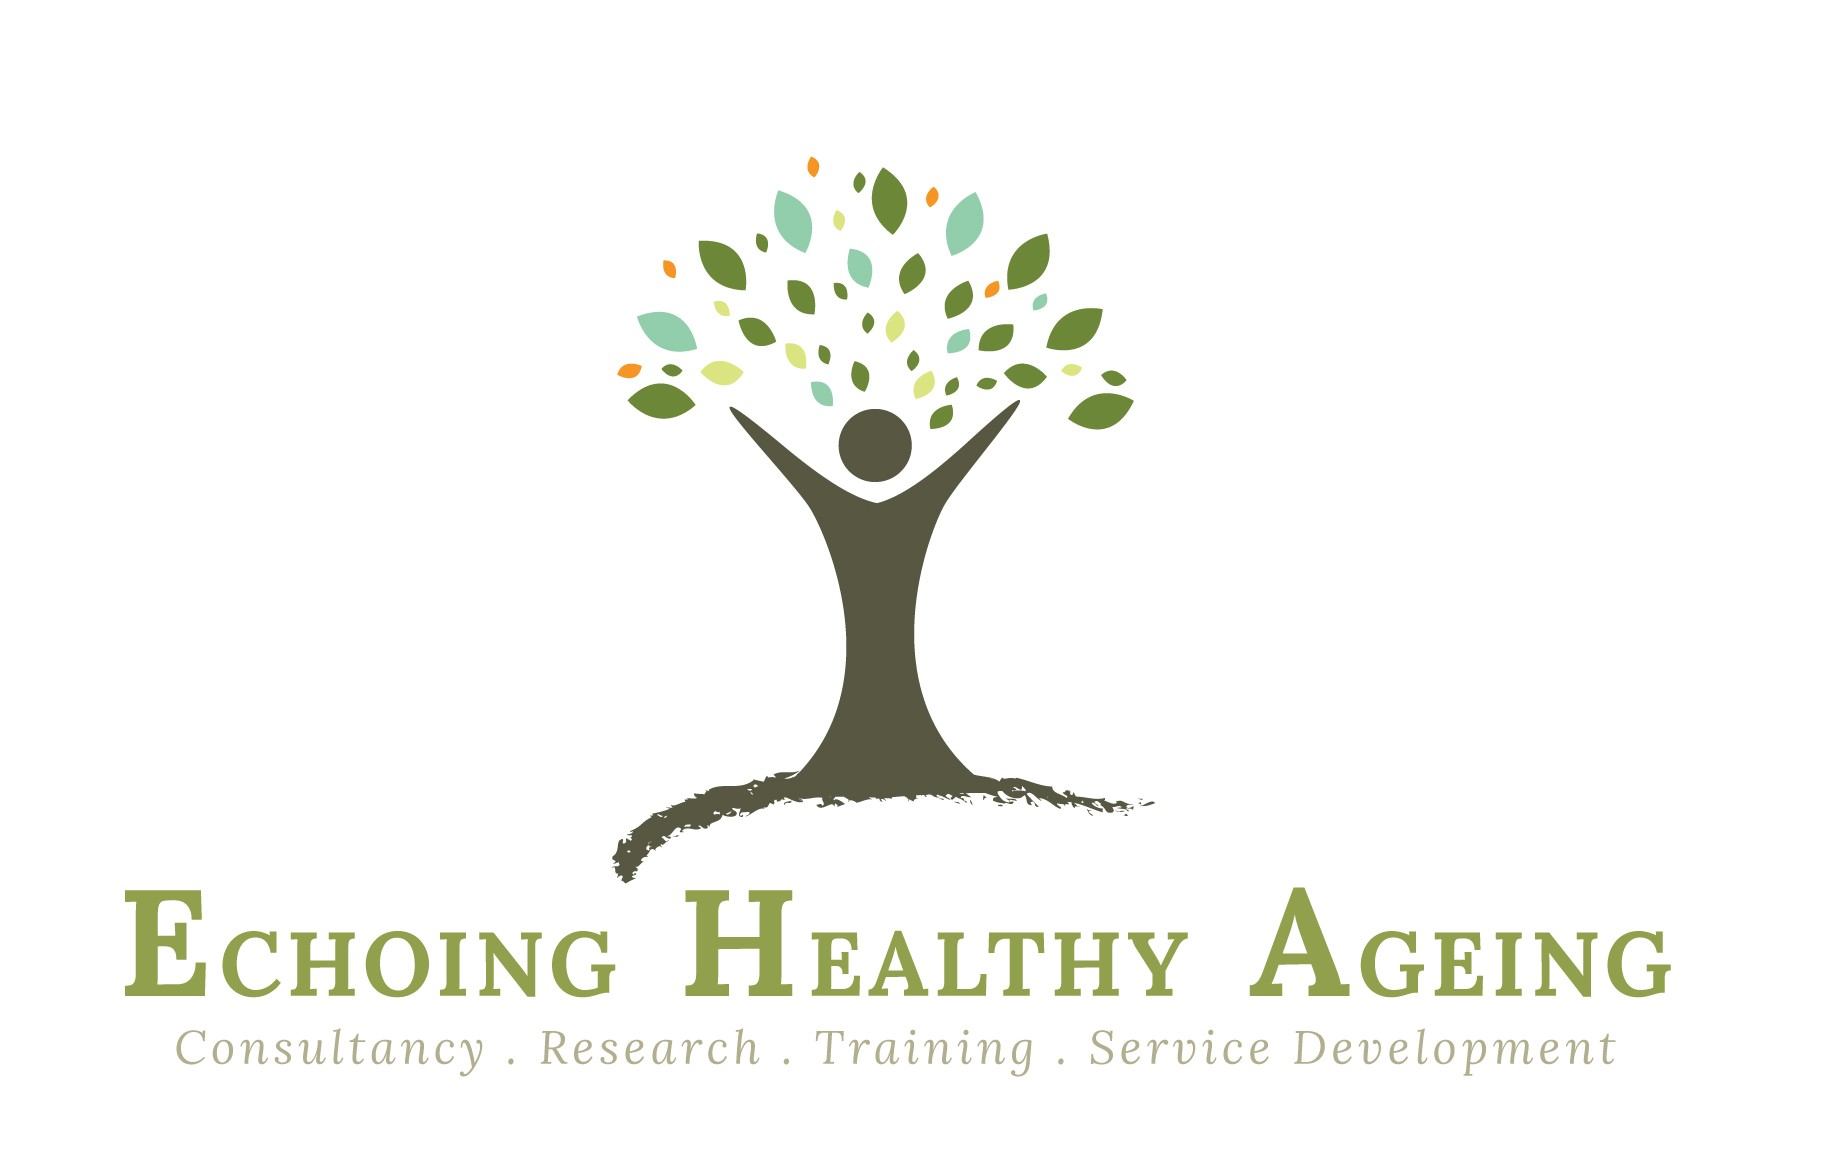 Echoing Healthy Ageing